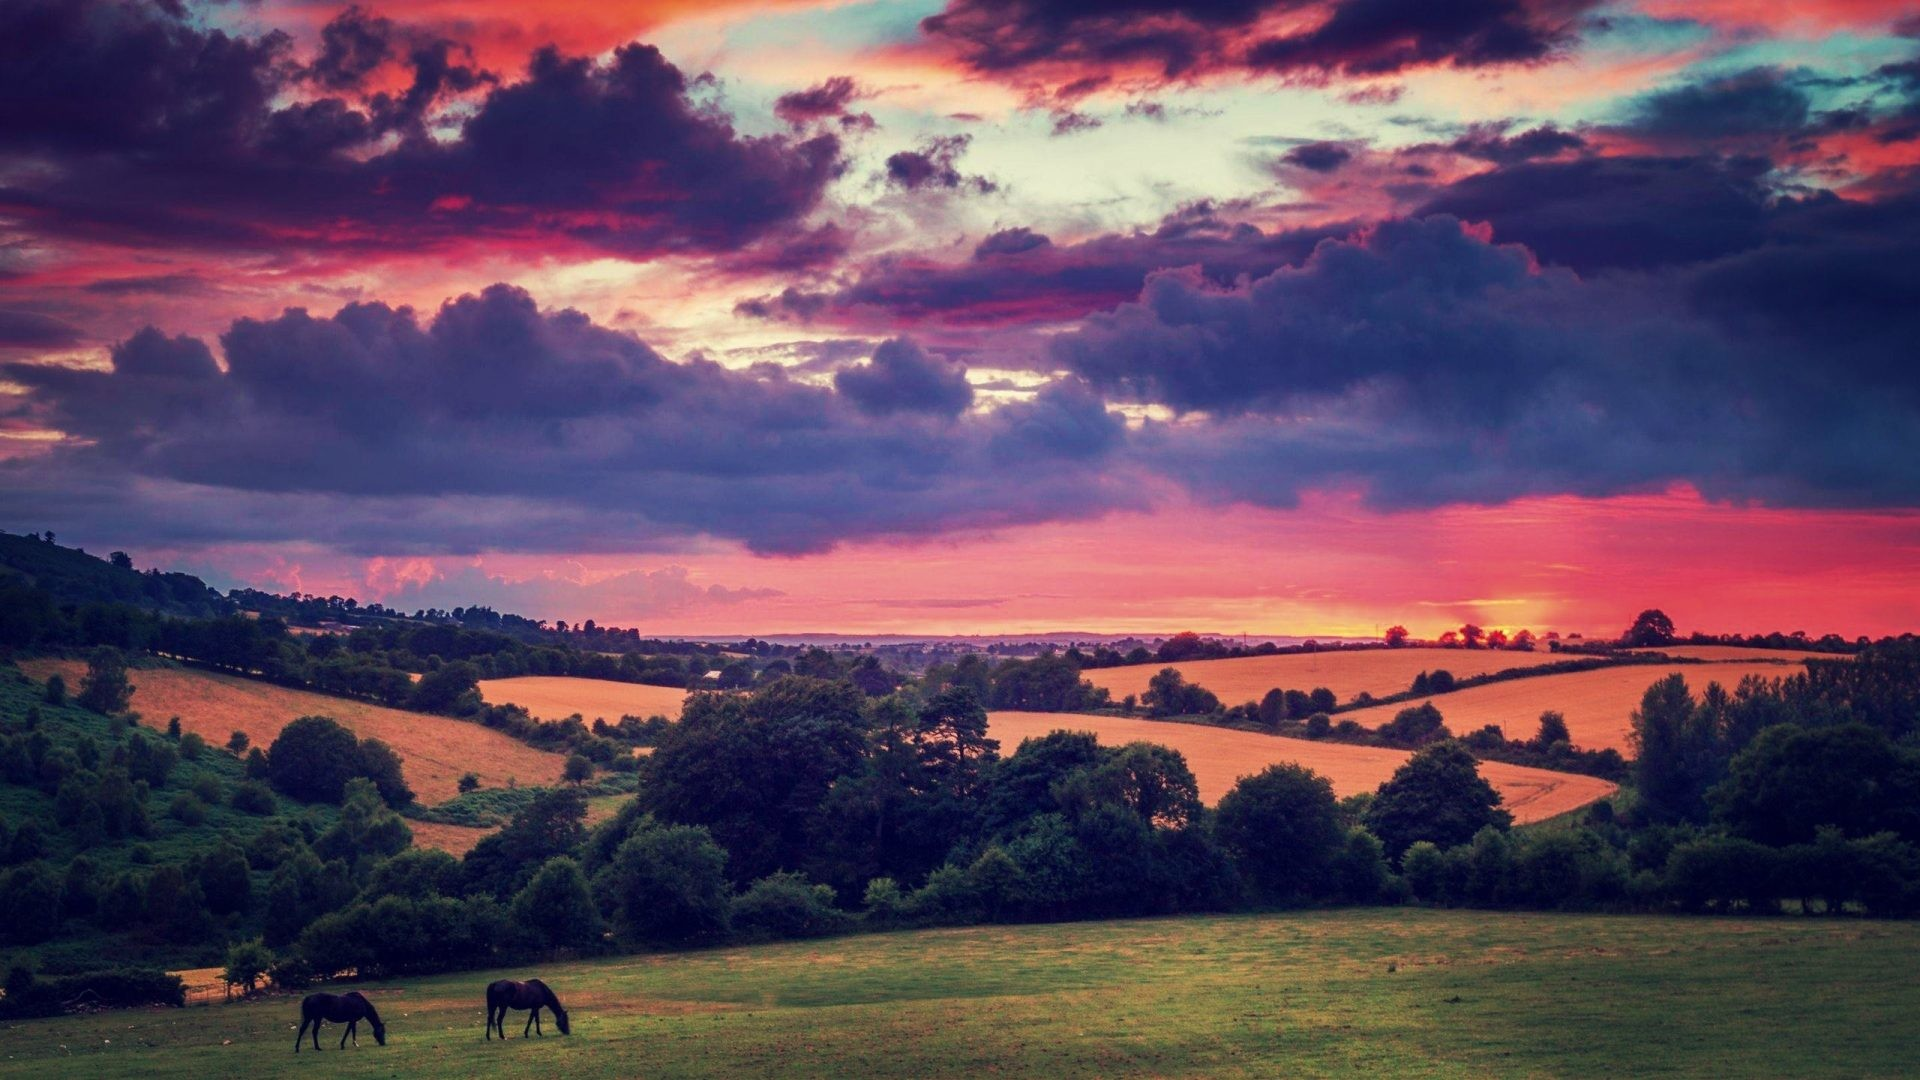 1920x1080 Ireland Tag - Hills Irish Animals Fields Clouds Plains Trees Flora Sunset  Ireland Nature Evening Horses